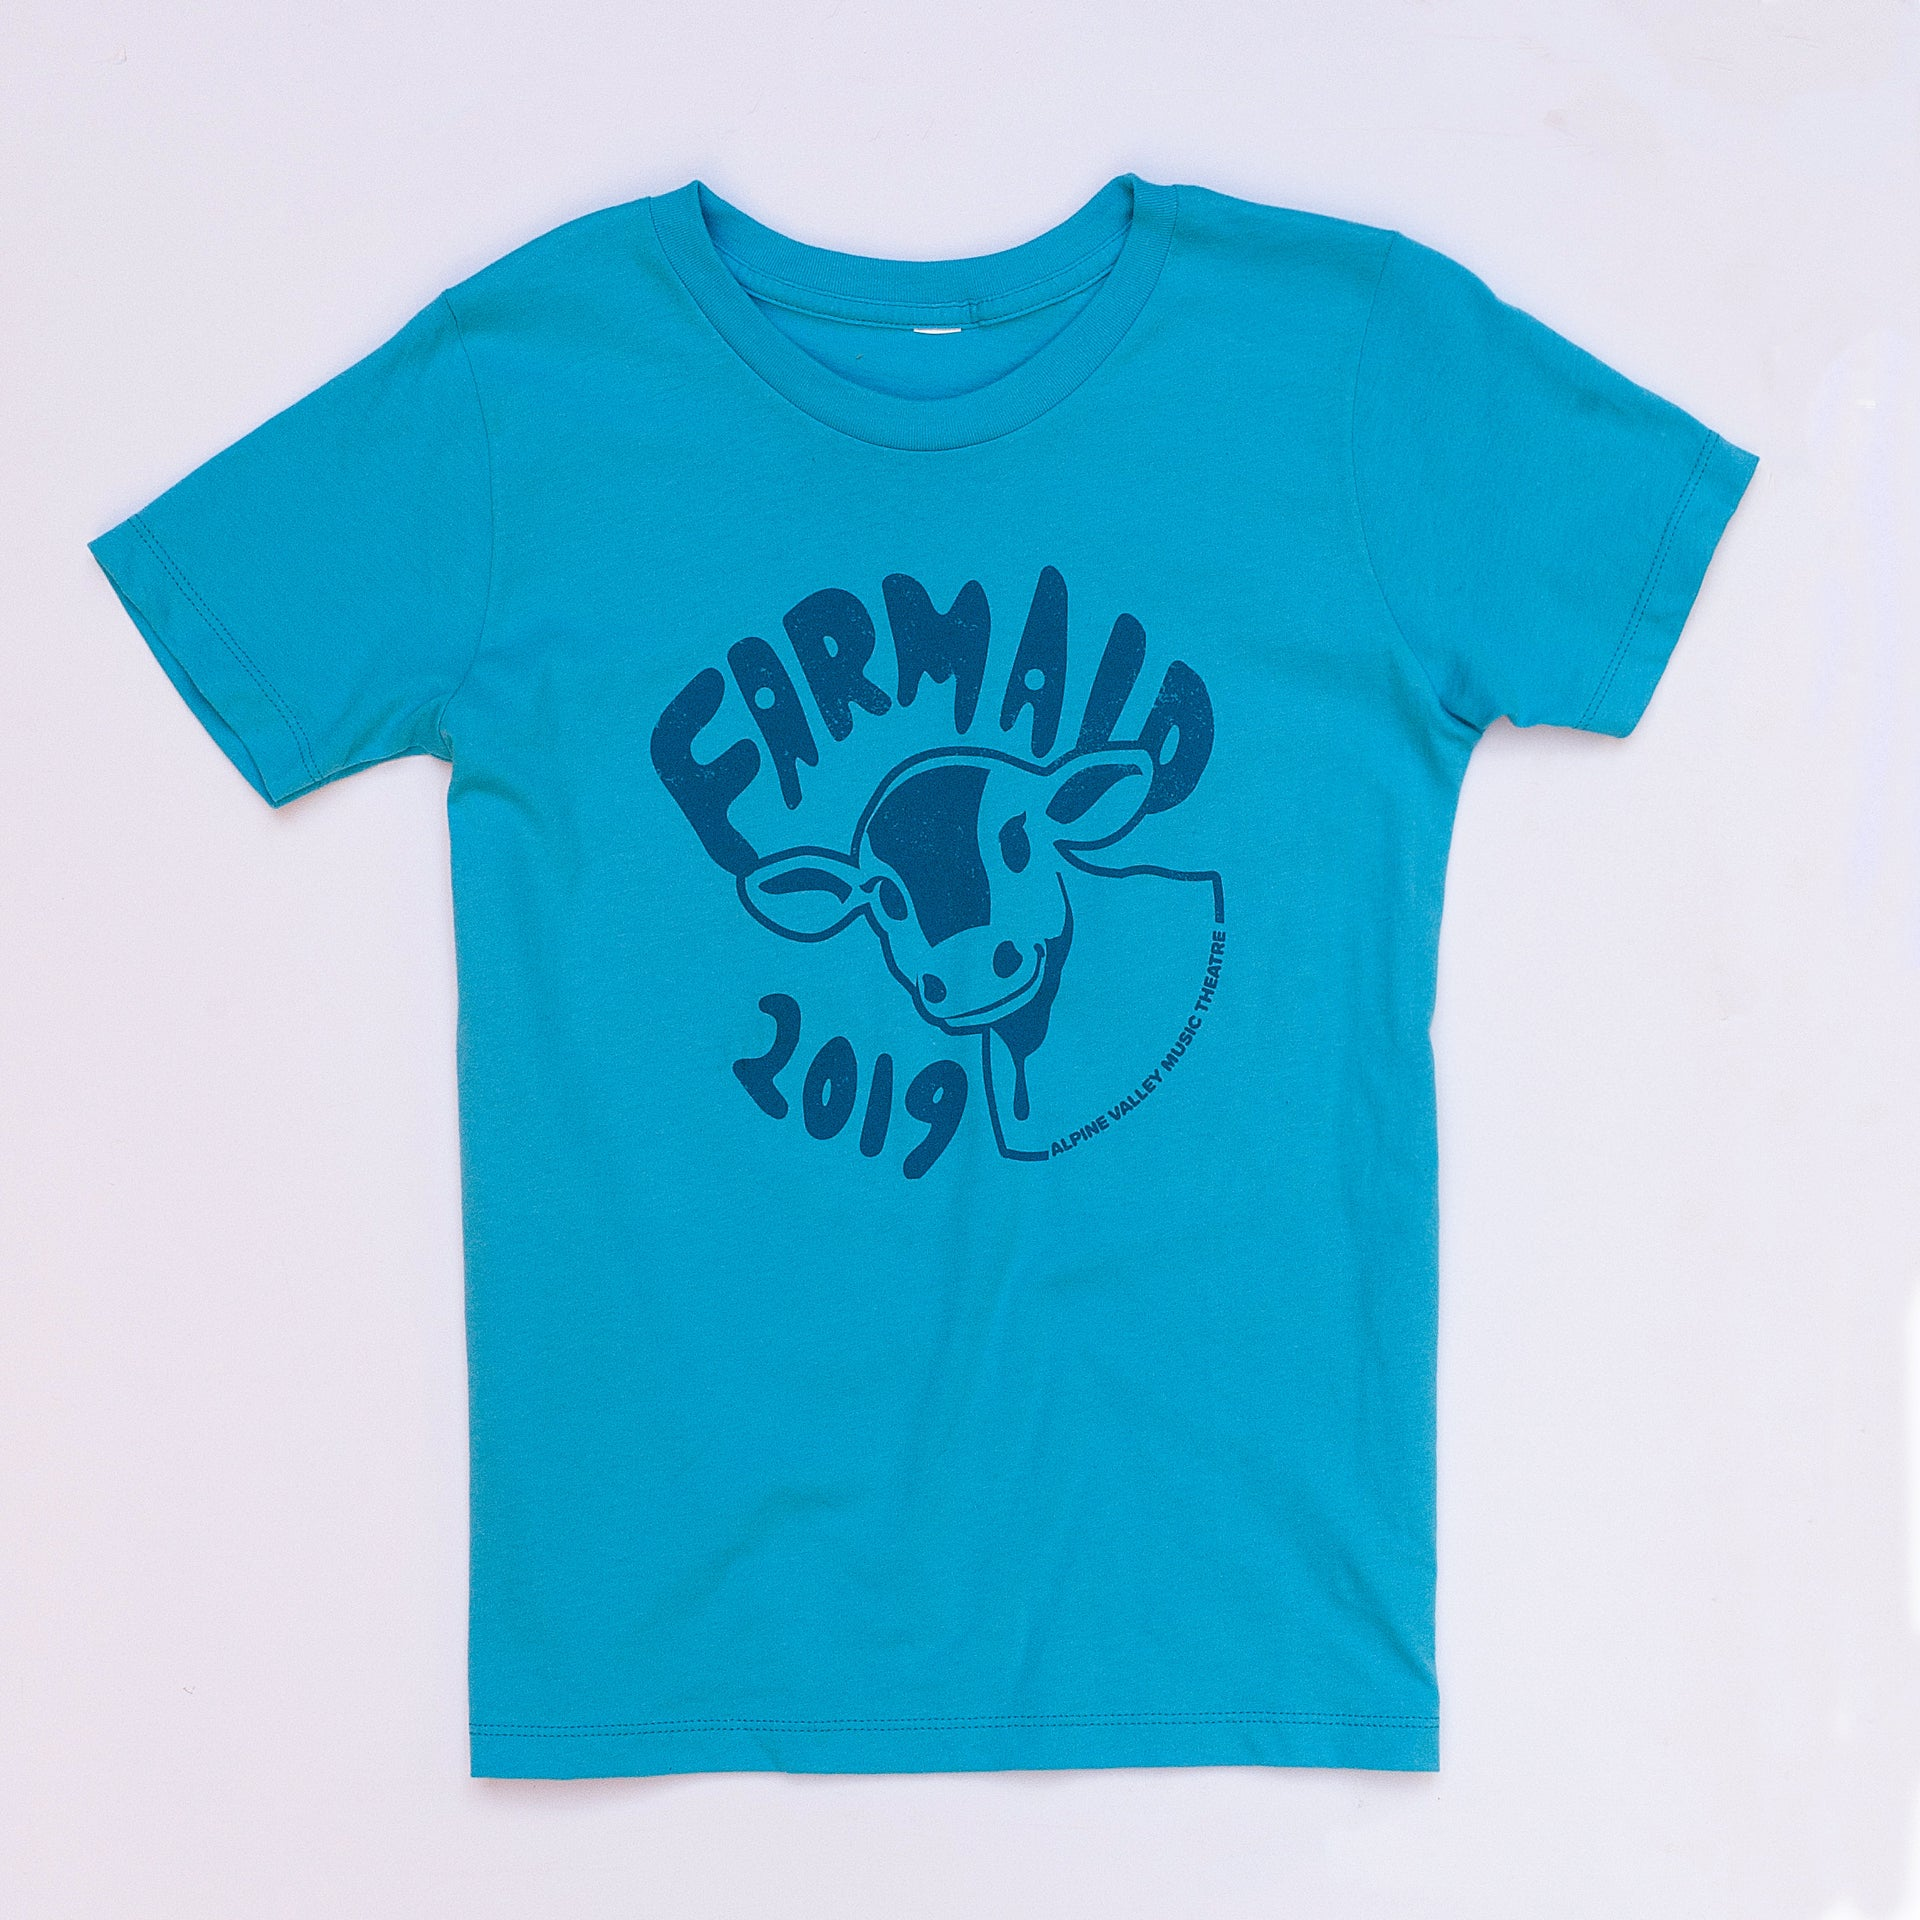 Farm Aid 2019 Happy Cow Tee (Kids)